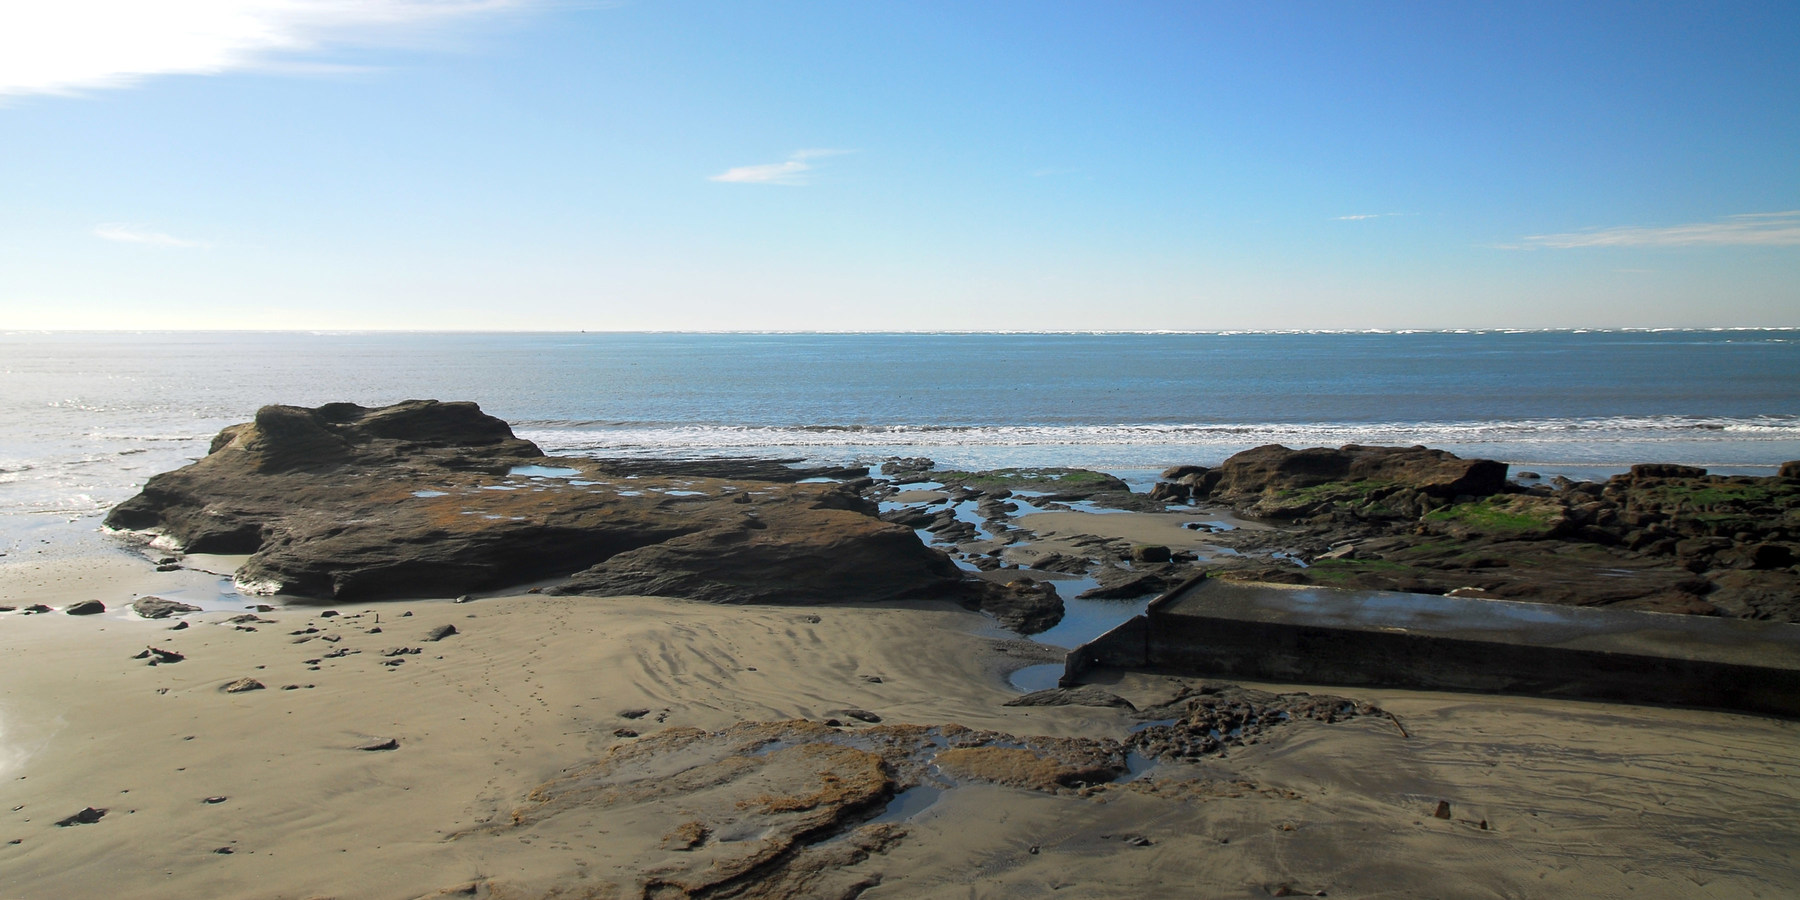 North Cove, Washaway Beach | Outdoor Project